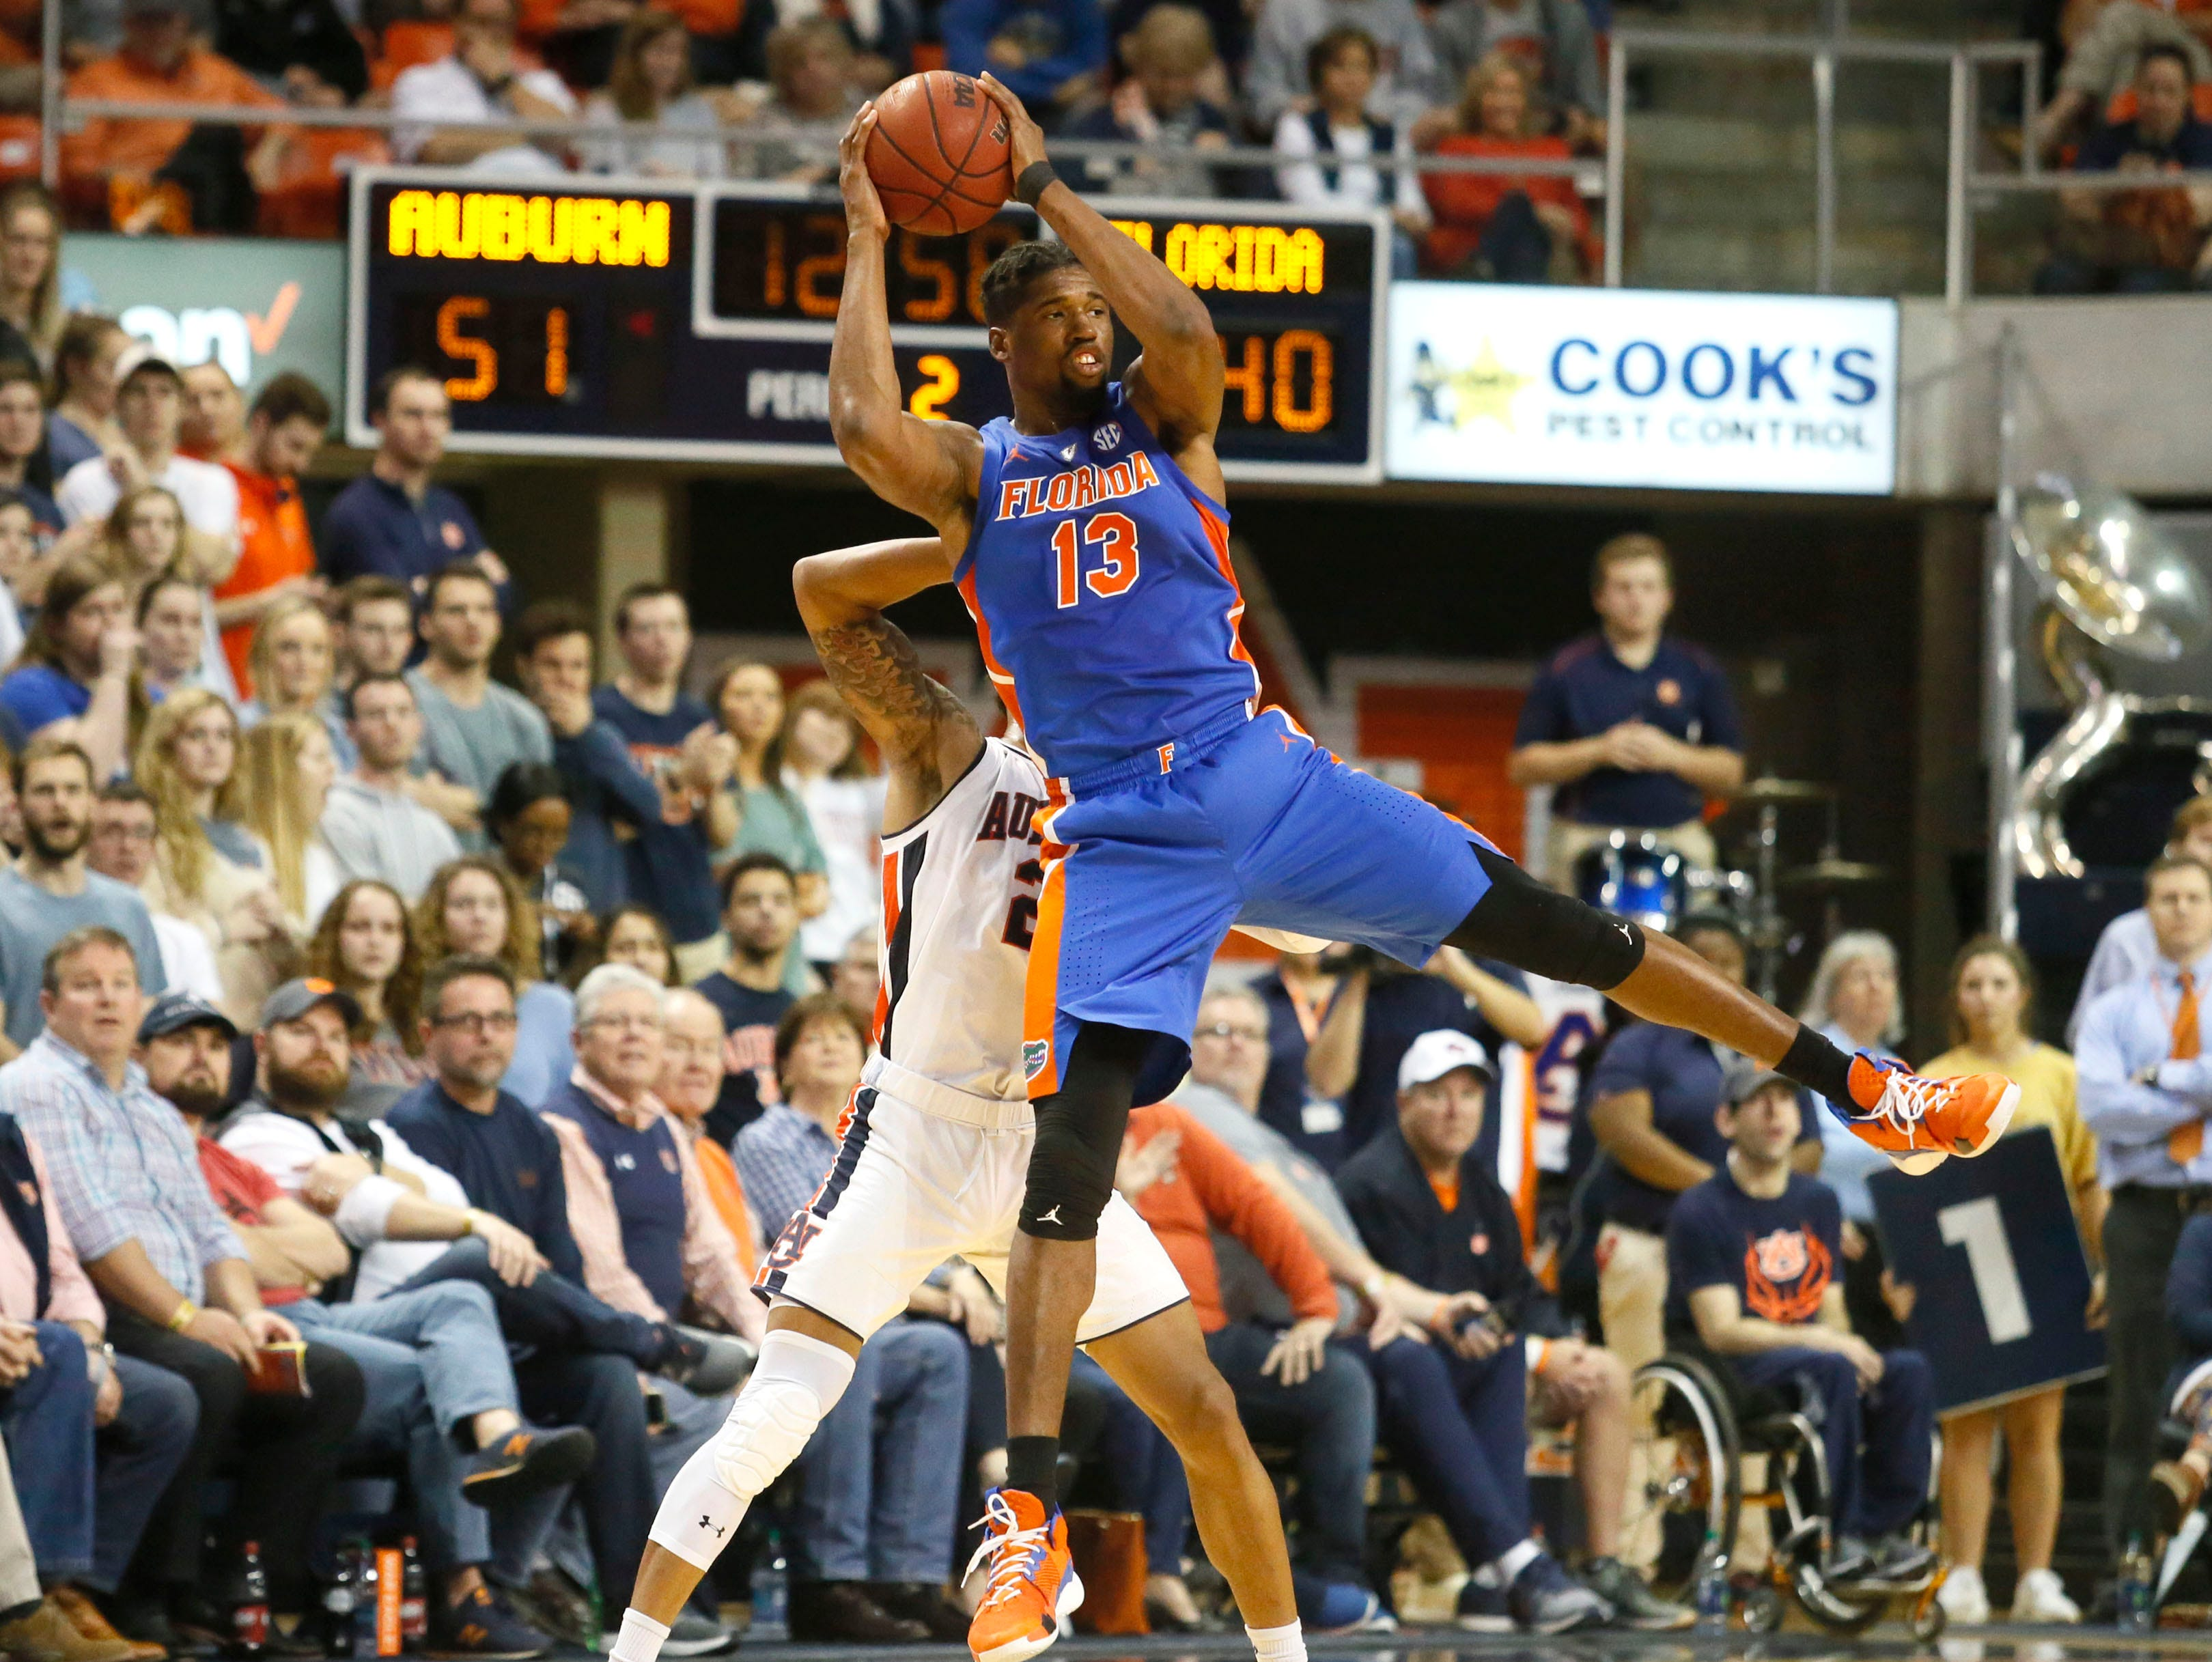 Feb 5, 2019; Auburn, AL, USA; Florida Gators center kevarrius Hayes (13) catches a pass during the second half against the Auburn Tigers at Auburn Arena. Mandatory Credit: John Reed-USA TODAY Sports